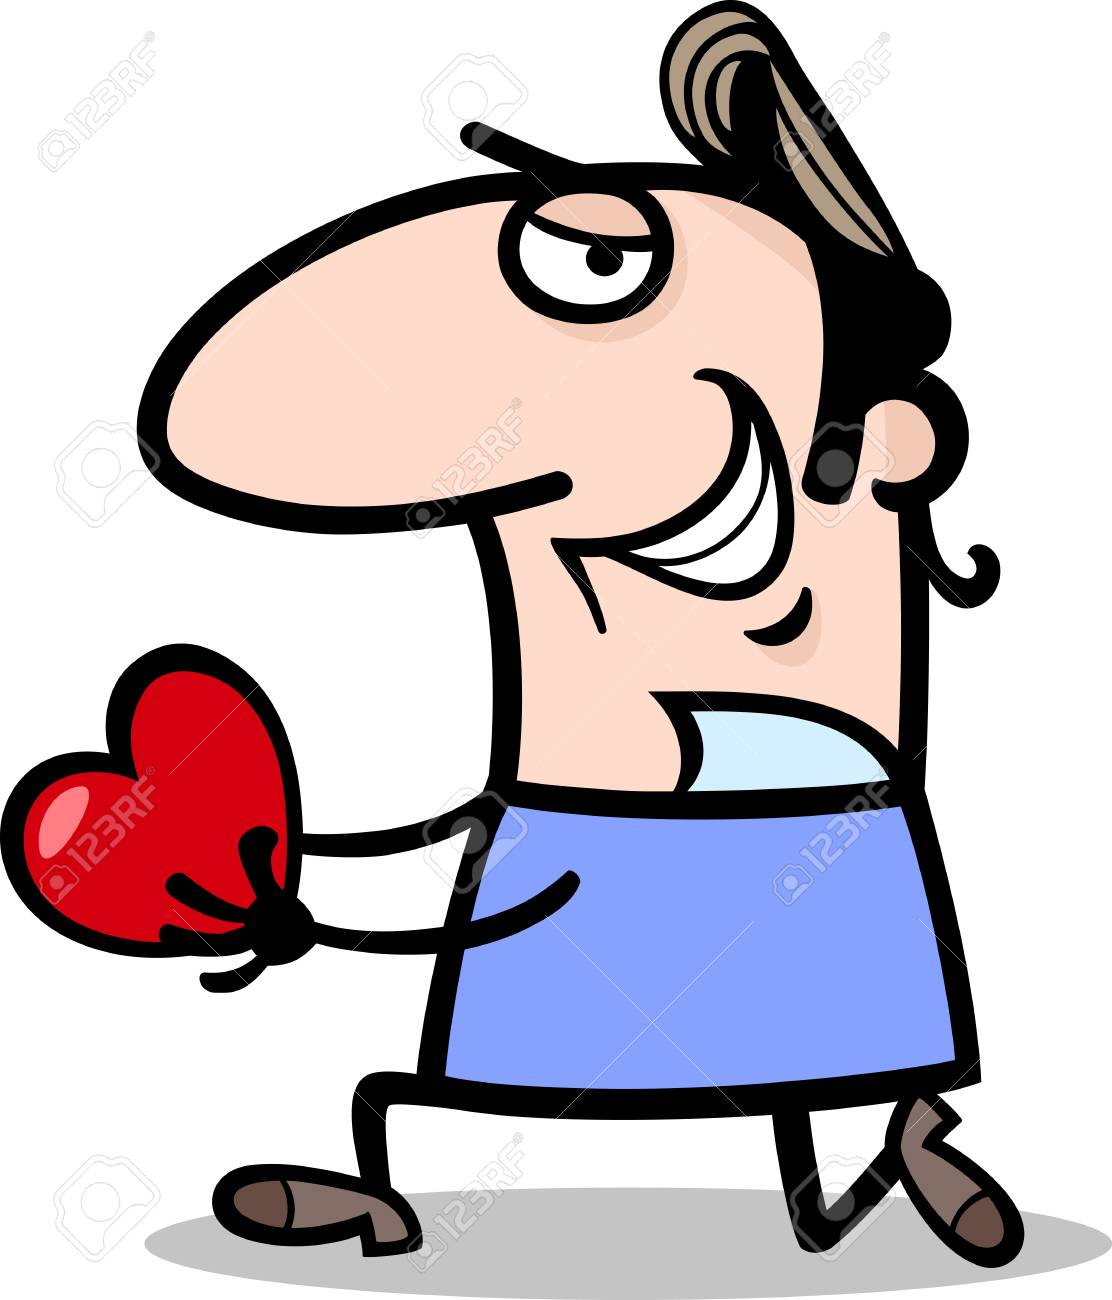 cartoon st valentines illustration of funny man in love giving